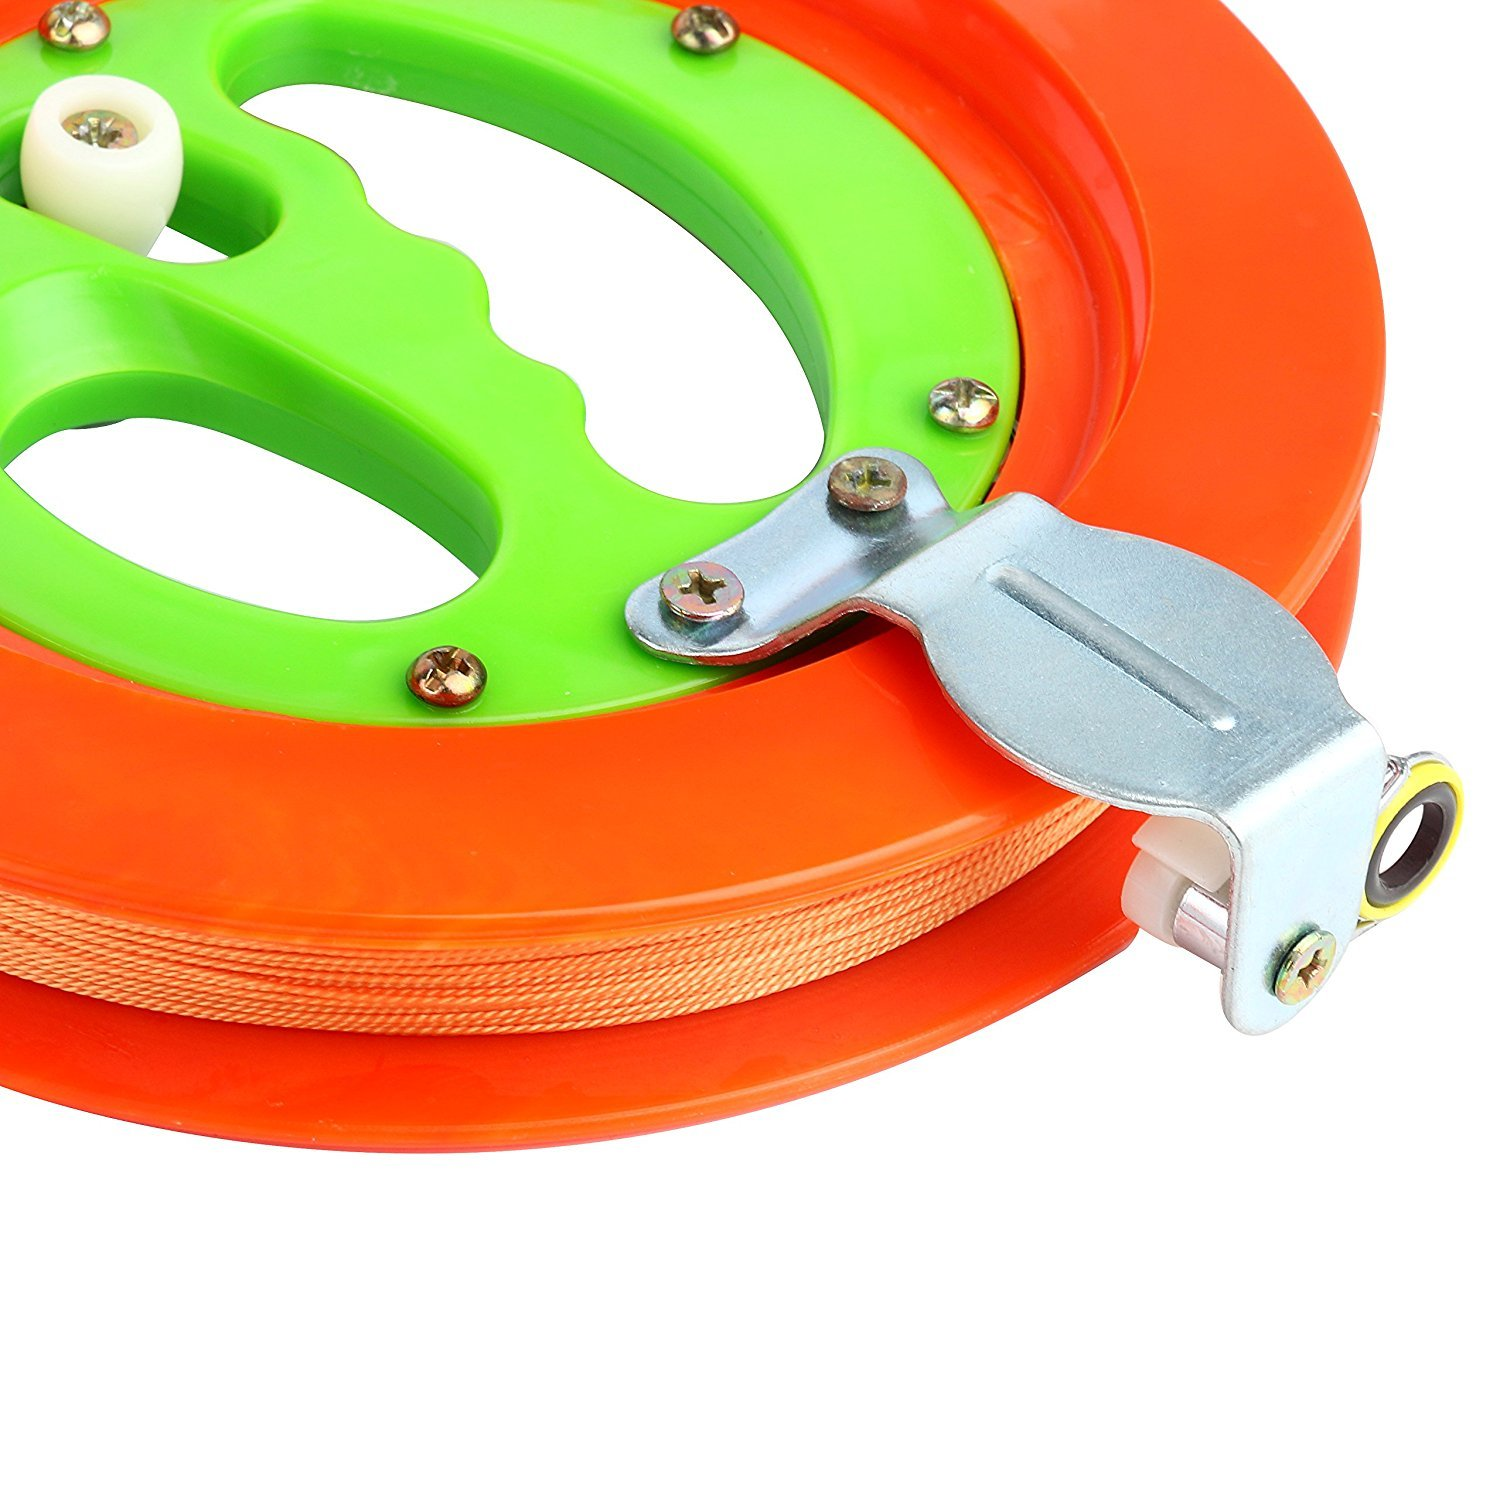 YaeTact Professional Reel Winder with Strong Kevlar Line 7 inch Diameter with 500FT Line